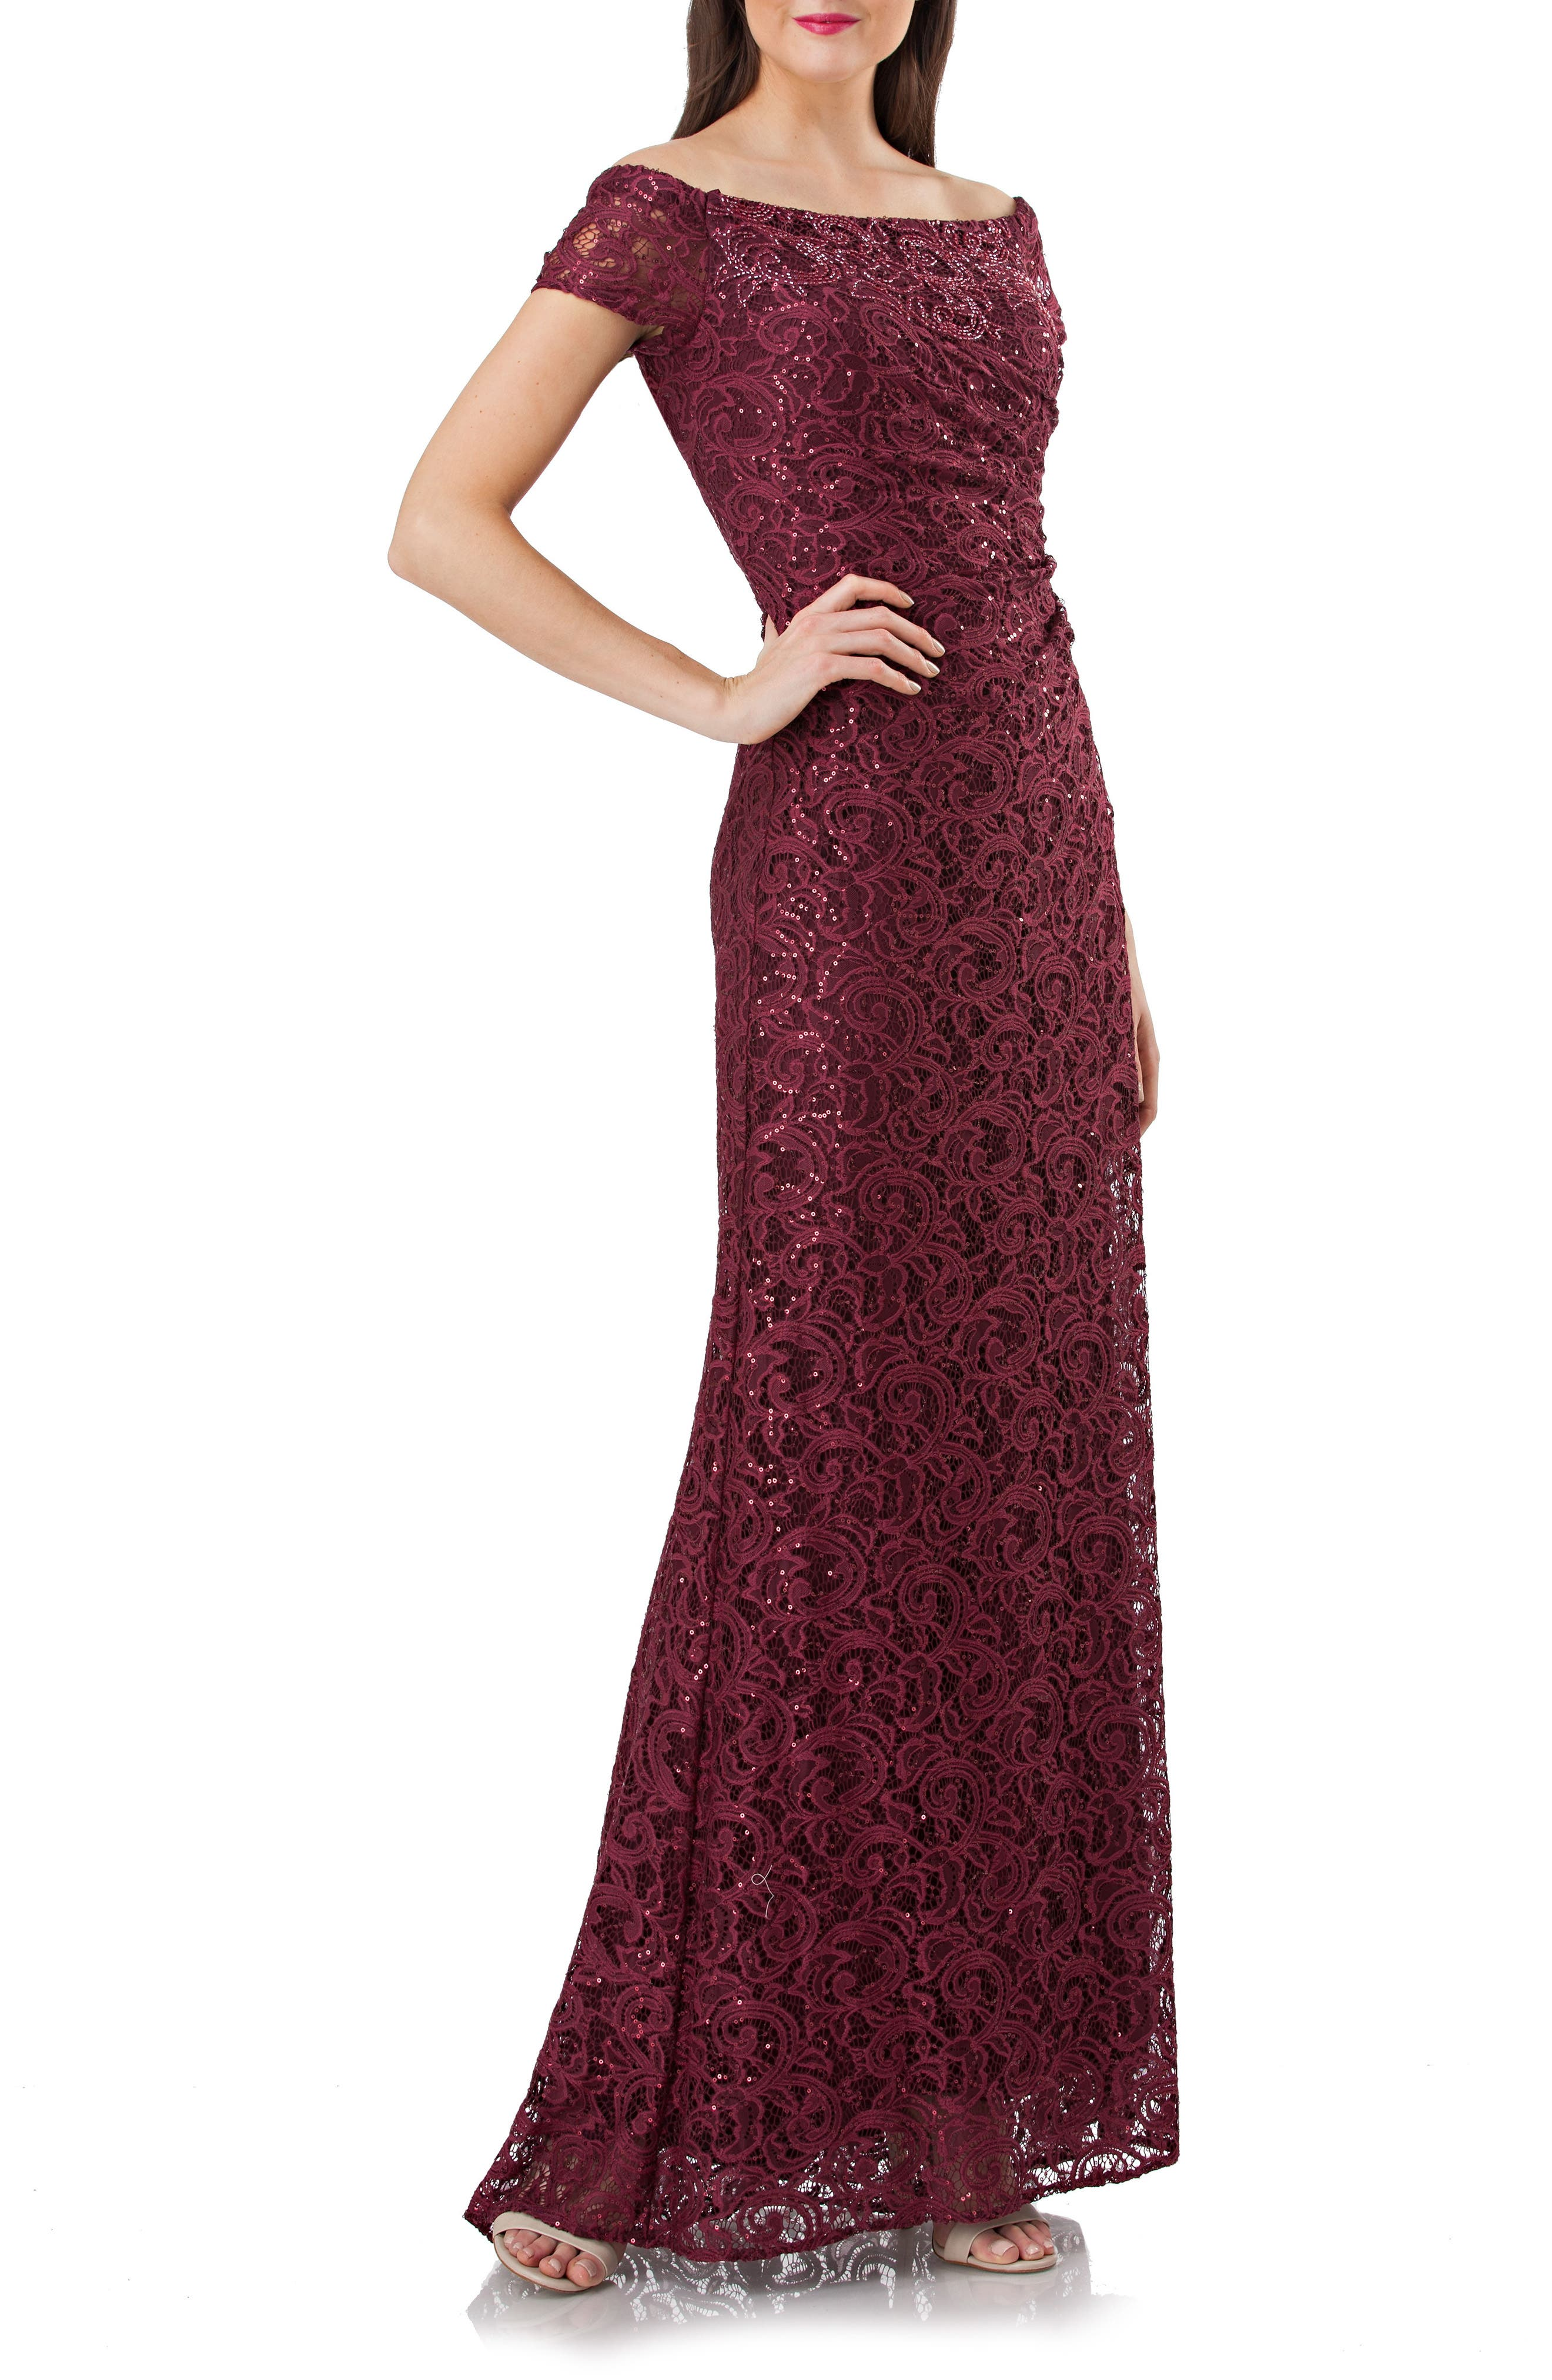 Sequin Lace Off the Shoulder Mermaid Gown,                             Main thumbnail 1, color,                             Burgundy